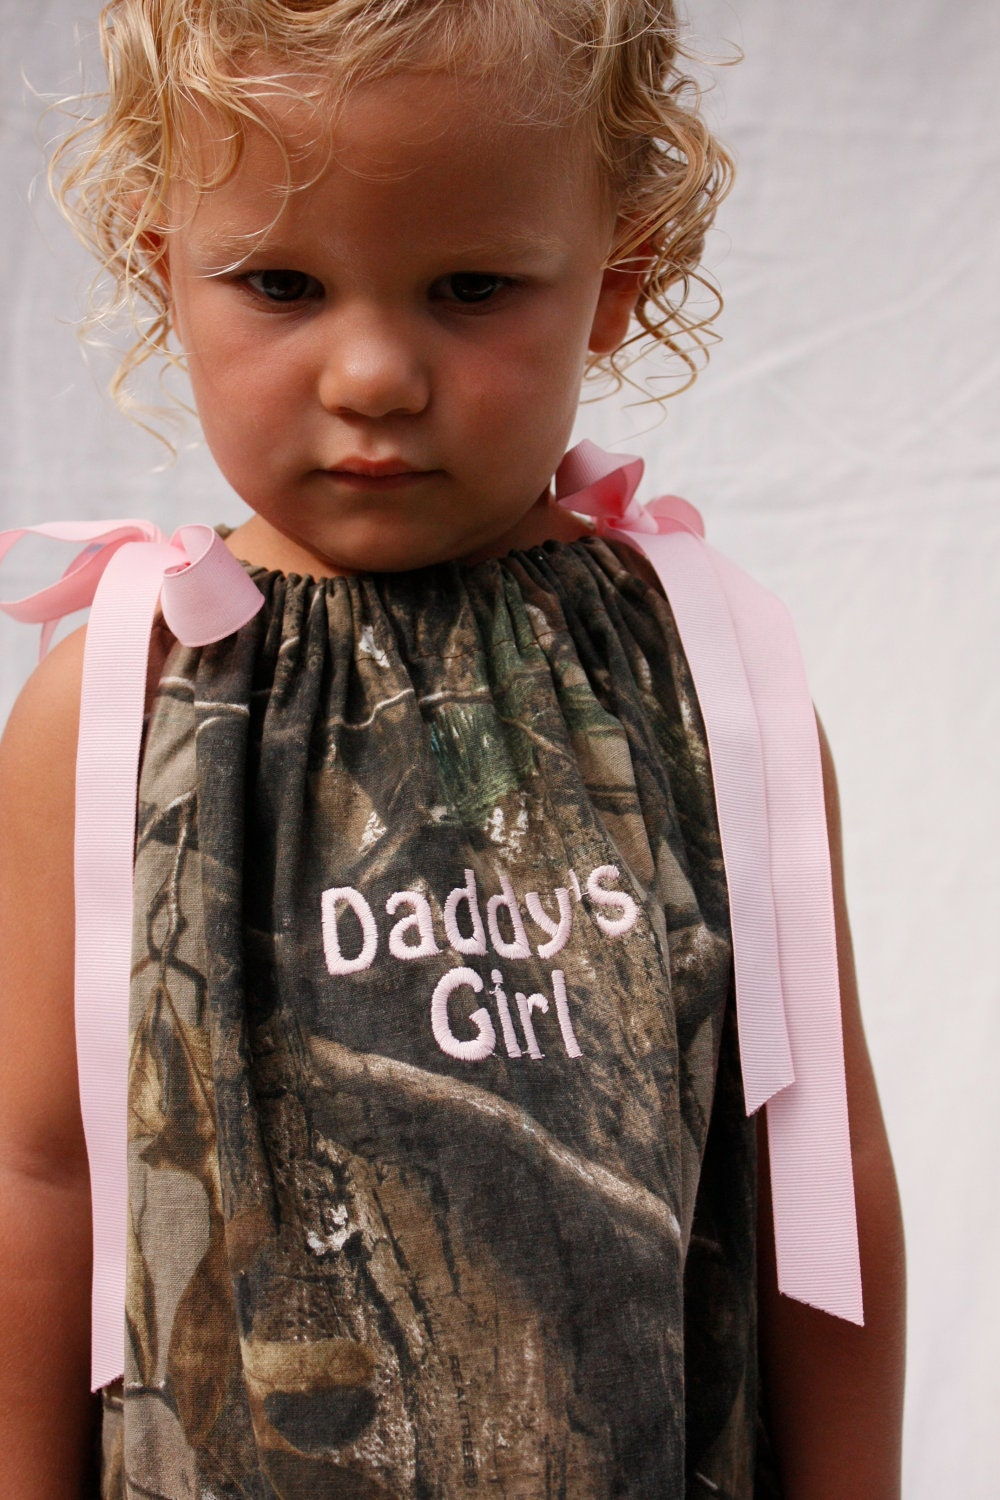 Camo Baby & Toddler. The latest in camouflage infant & children apparel, accessories and gift sets, baby camo clothing. Pink & Mossy Oak Camo 4 Pc Baby Girl Snap Onesie Set. $ Realtree Camo & Pink Baby Girl Infant Set - 4 Pc. $ Woodland Camouflage Baby Onesie. $ Lil Hunter Realtree Hat & Mitten Set.